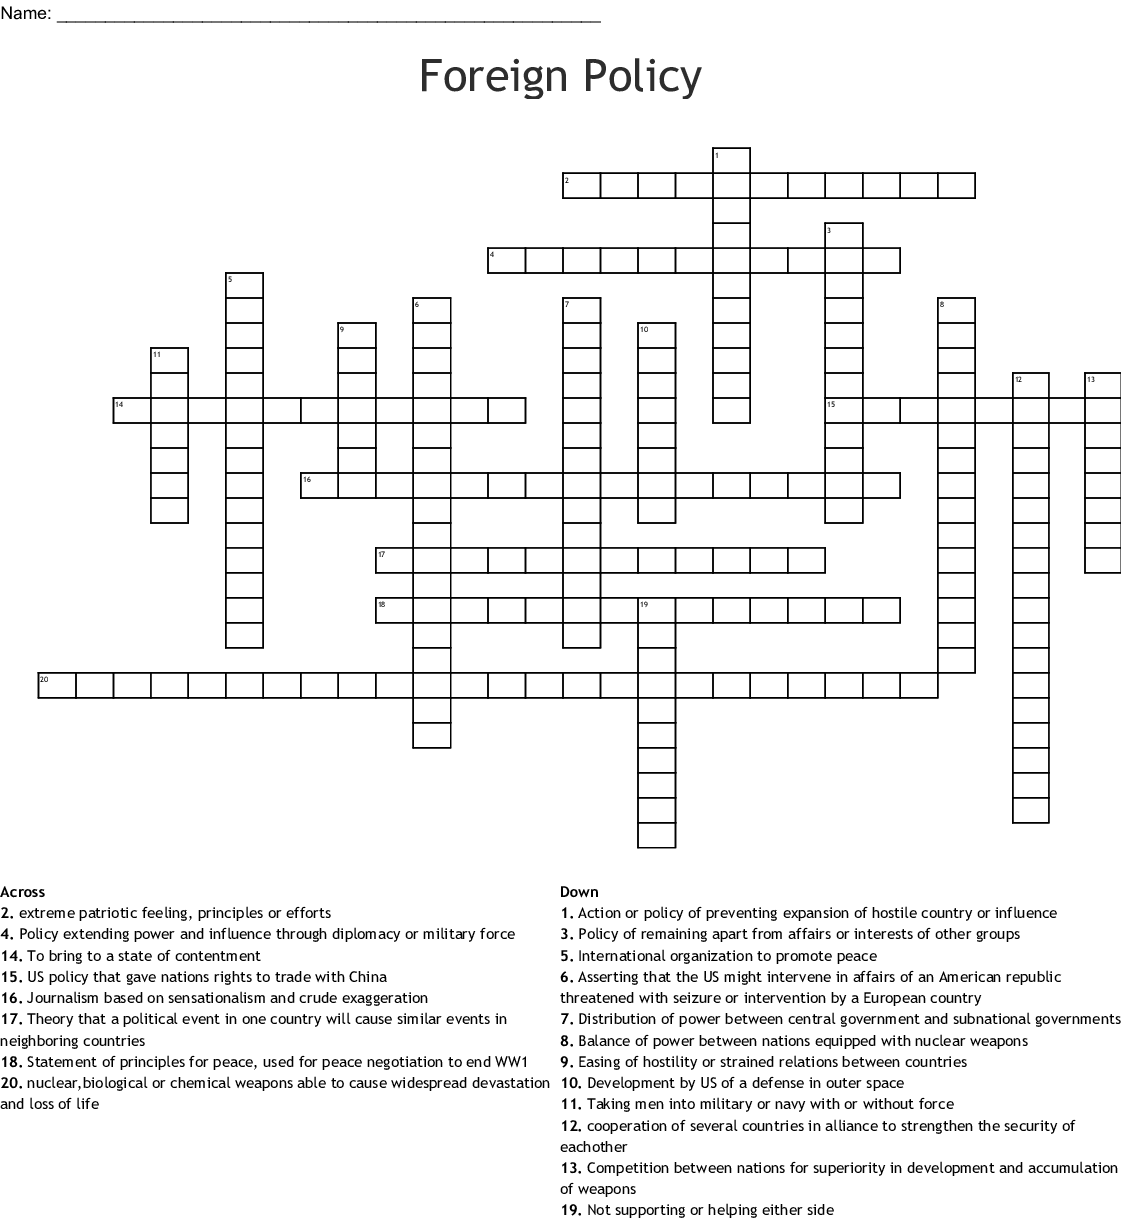 Foreign Policy Crossword - WordMint